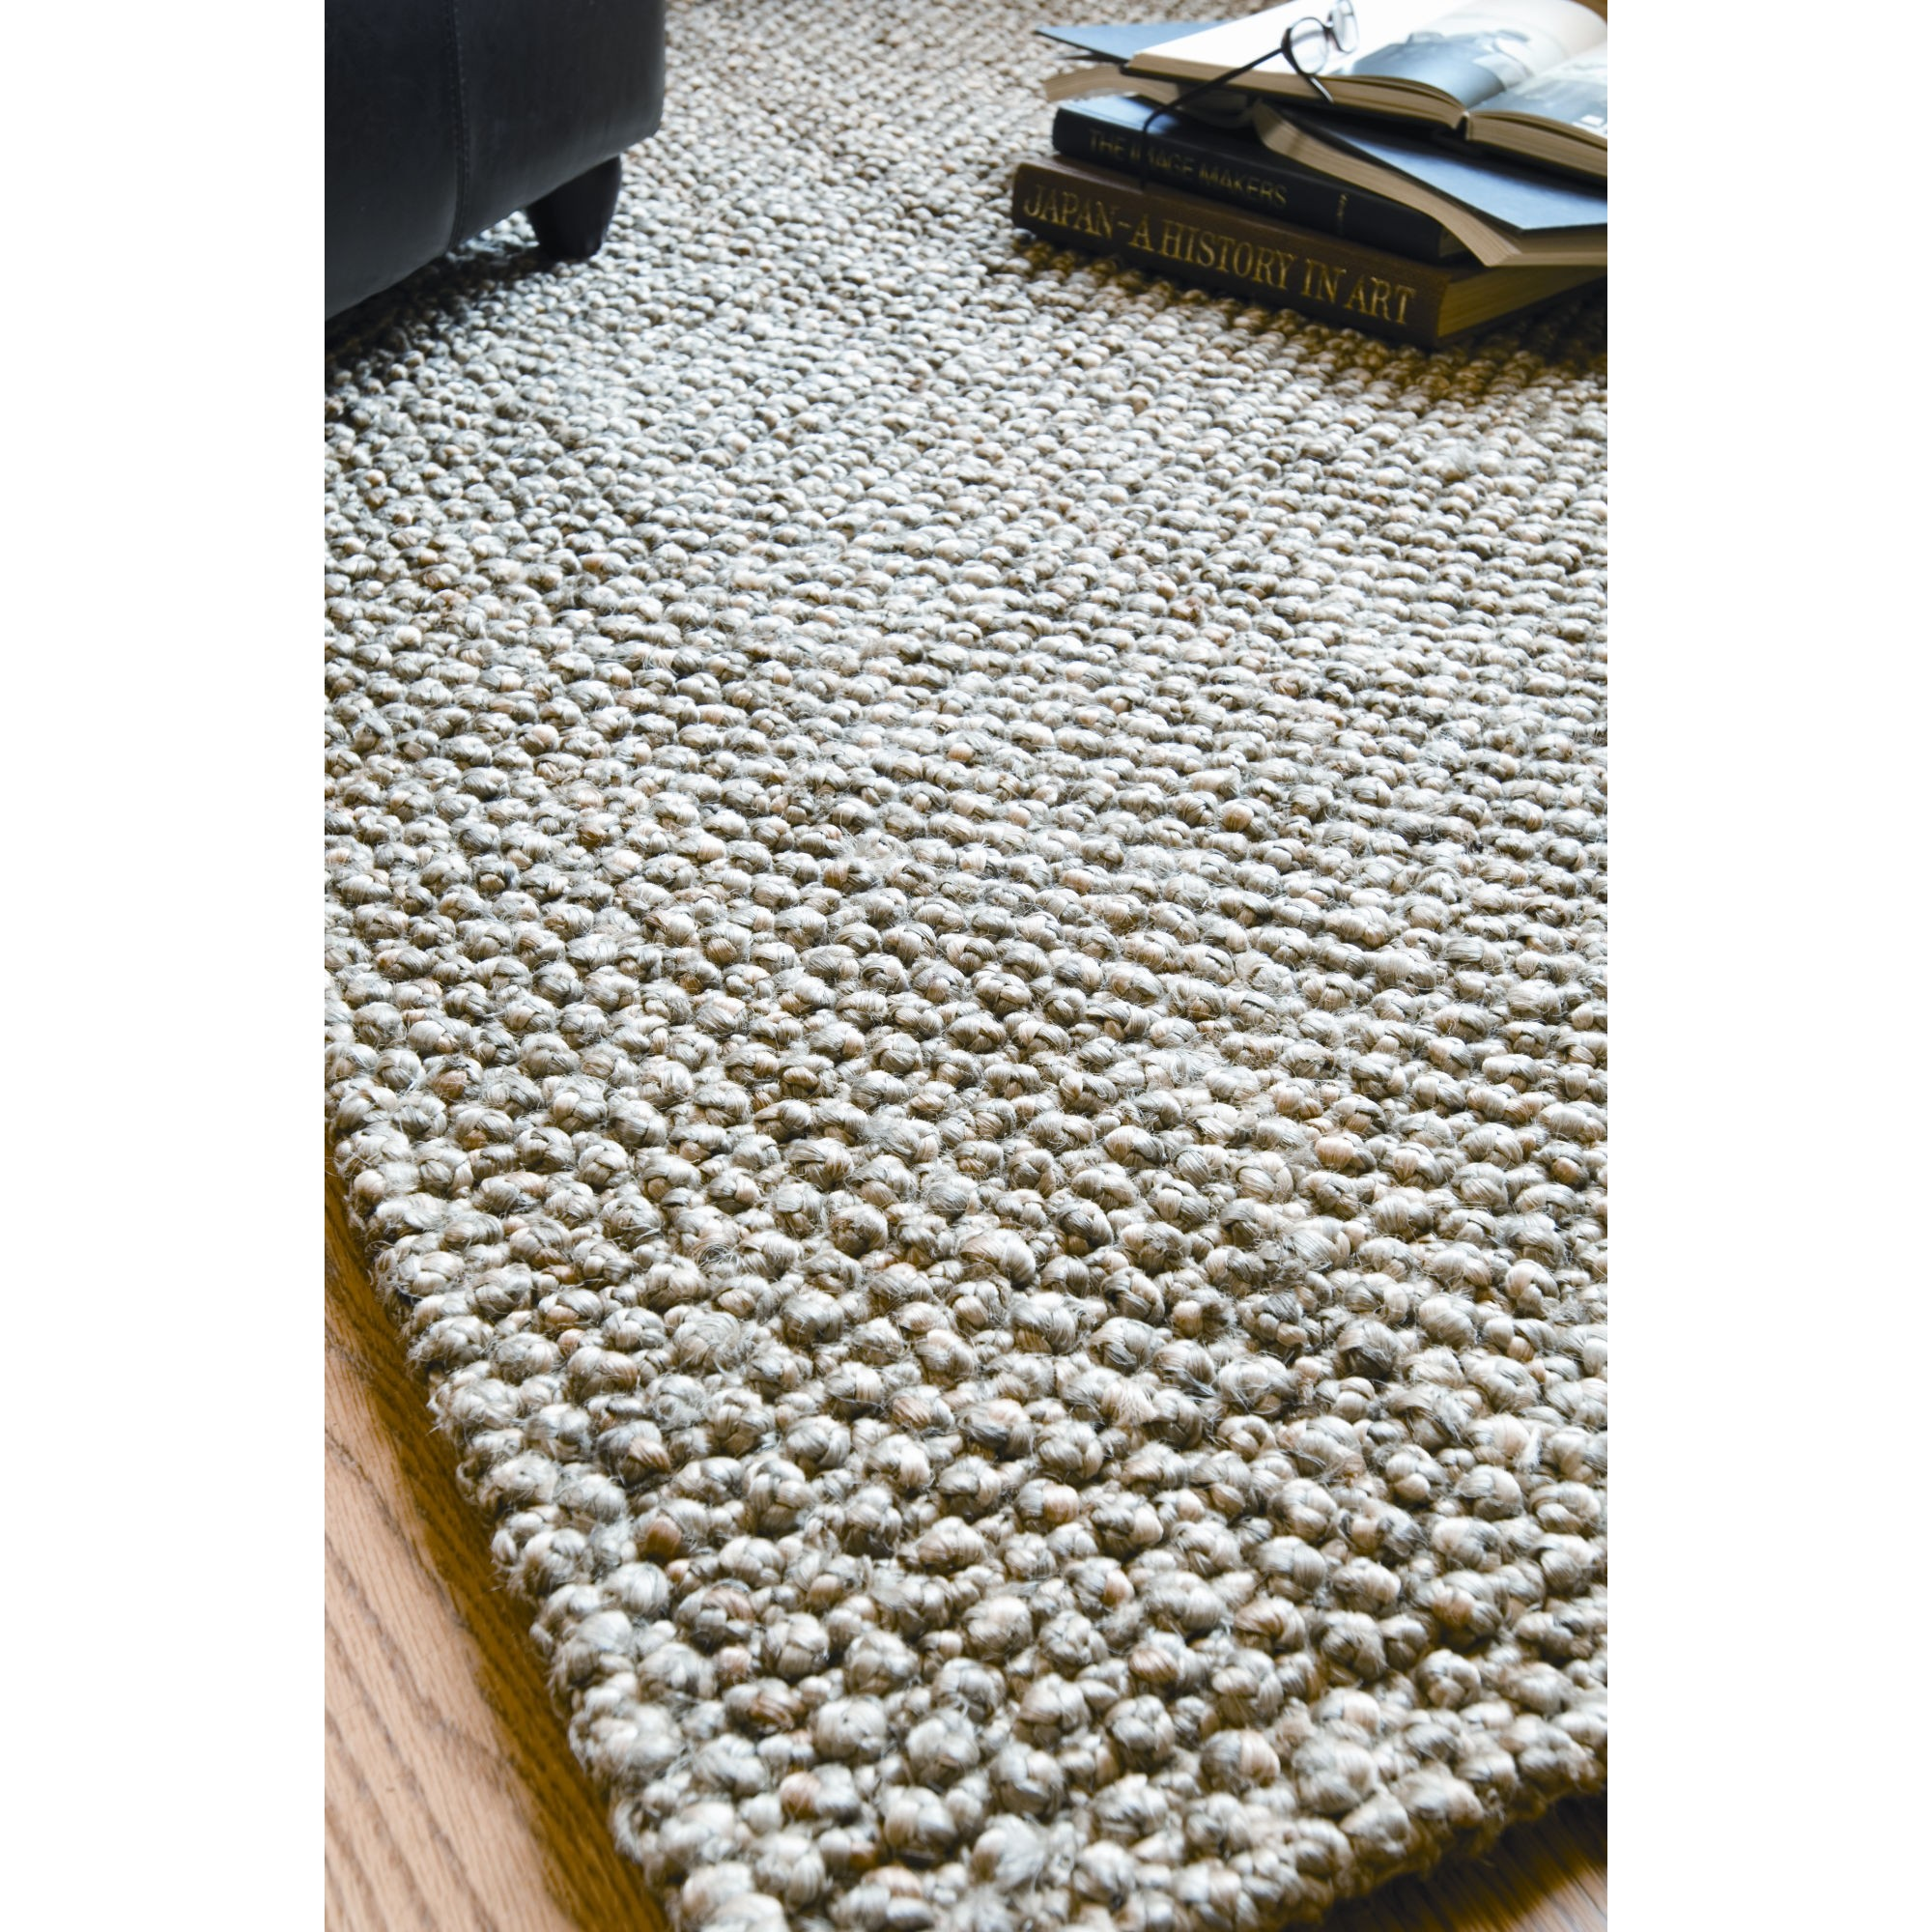 Classic rectangle Braided Rugs in wheat theme on wooden floor for floor decor ideas